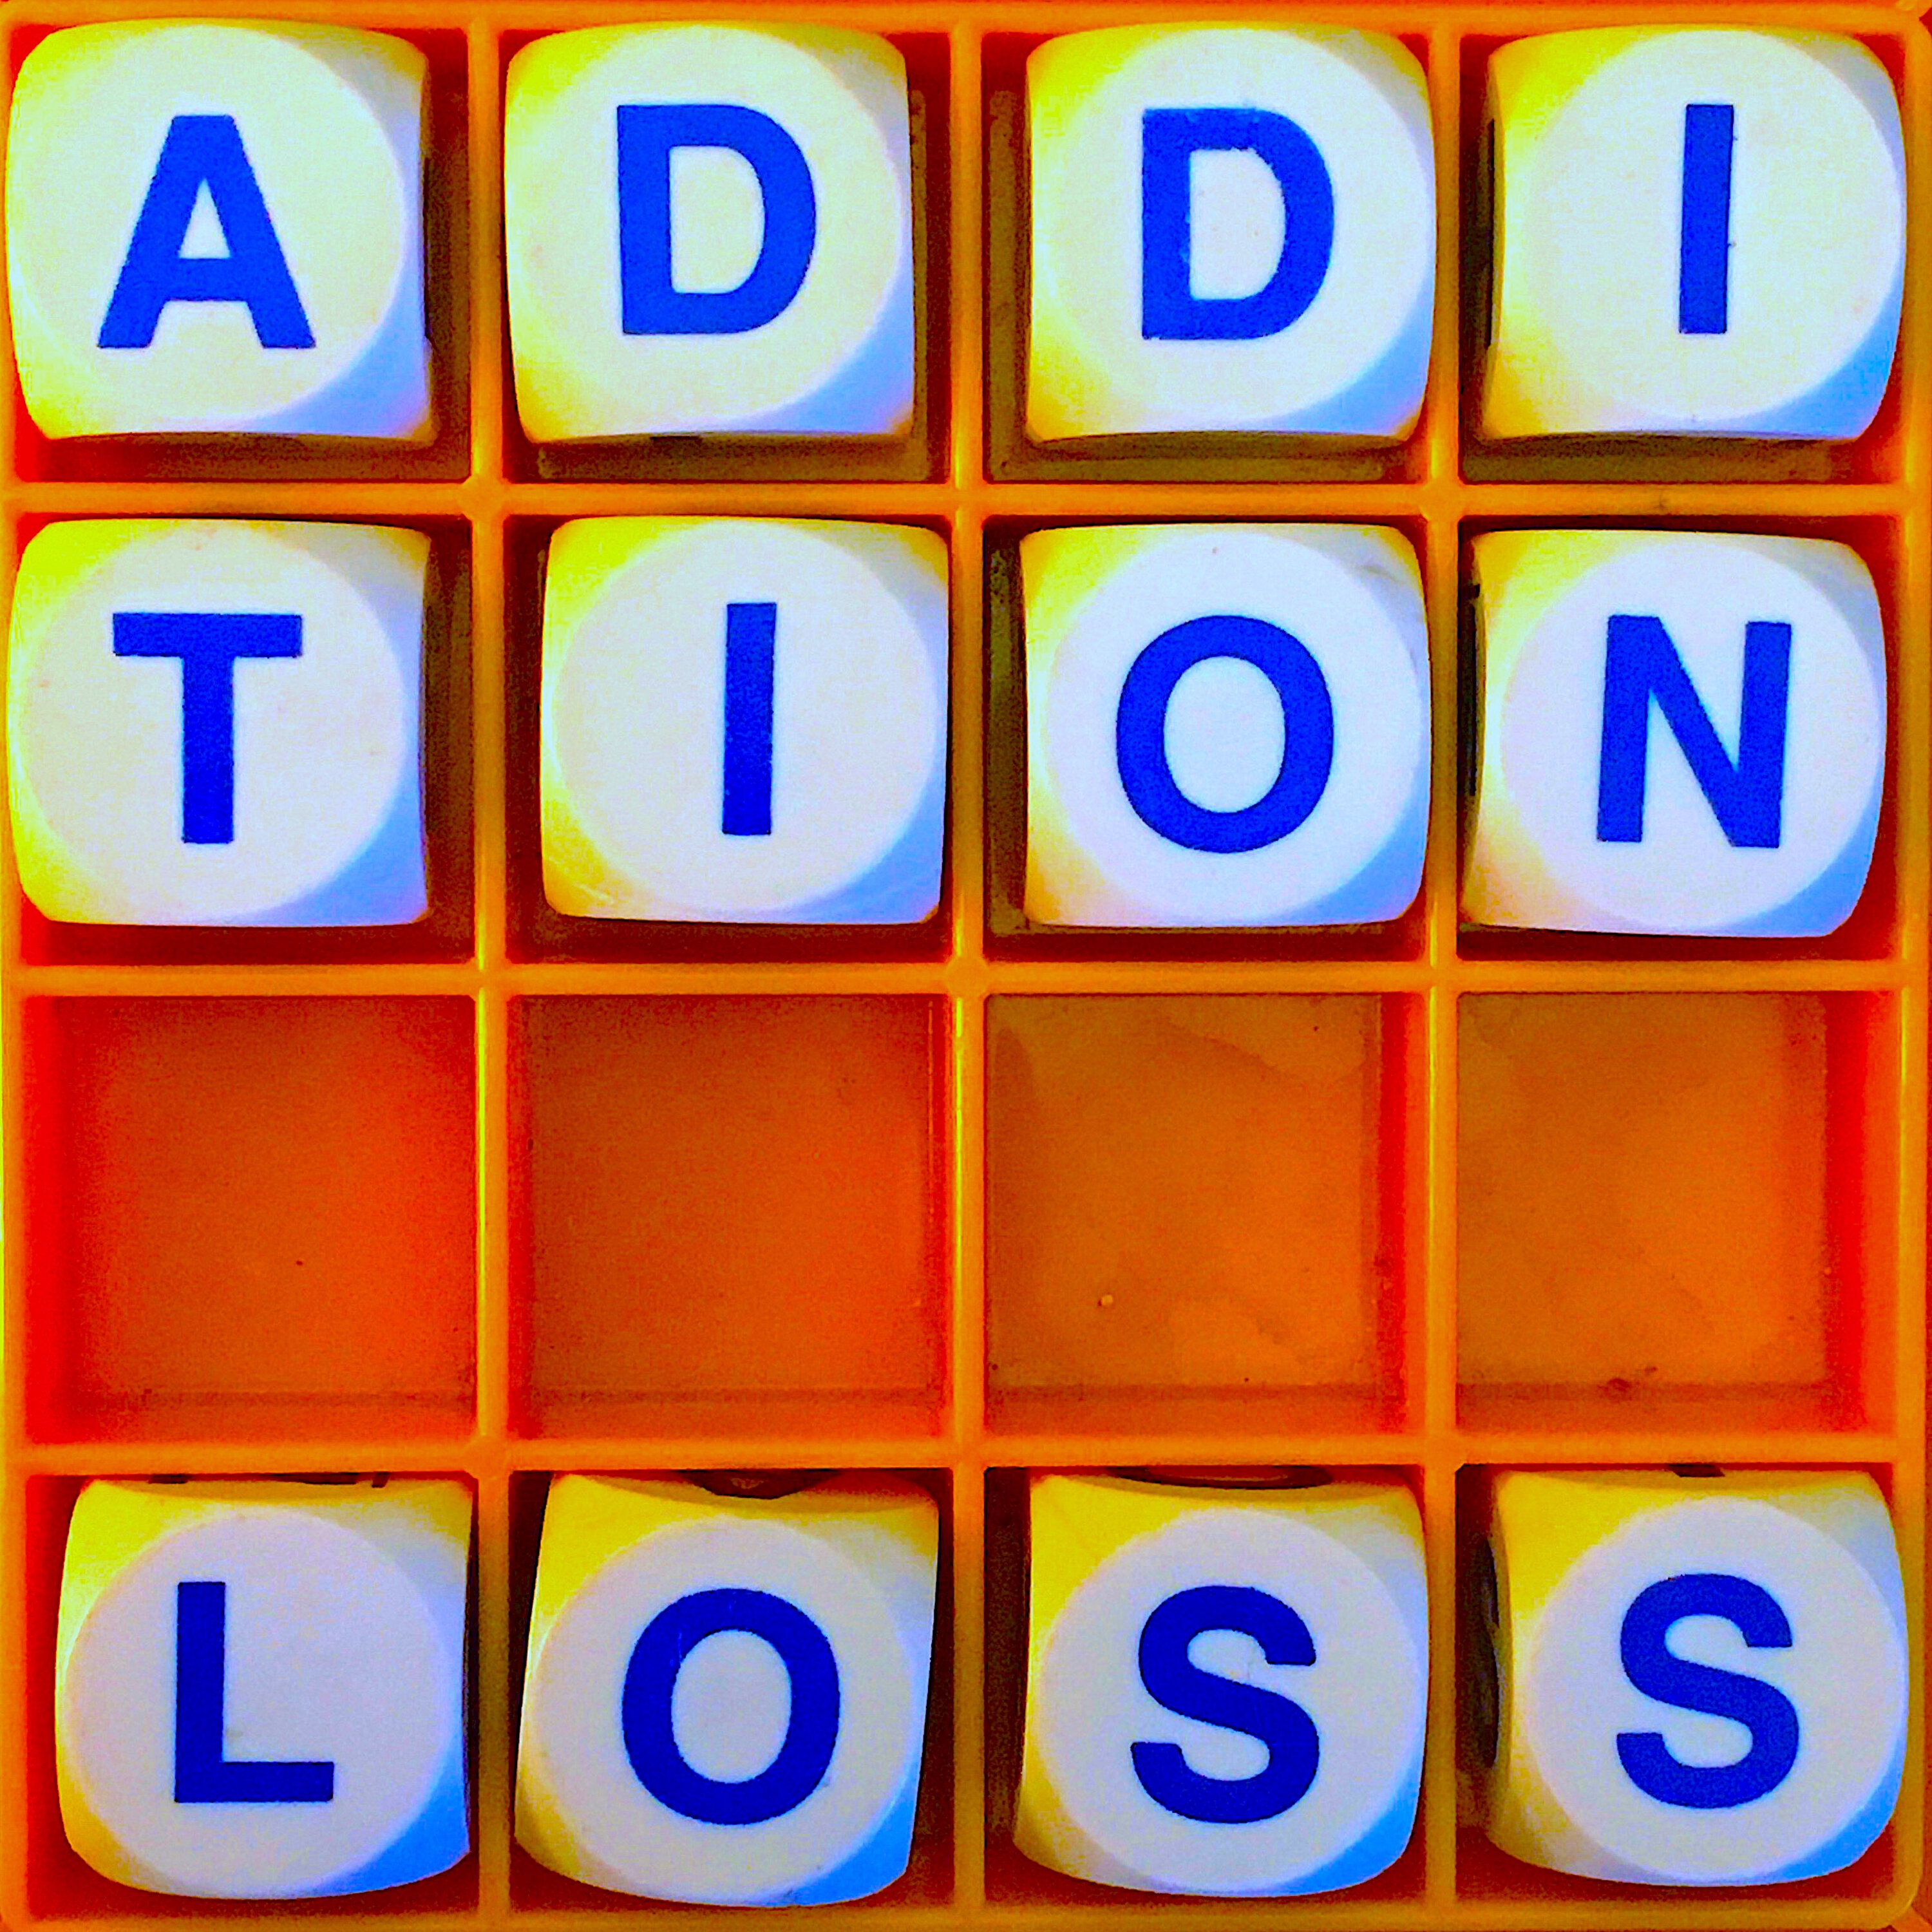 132. Additions and Losses